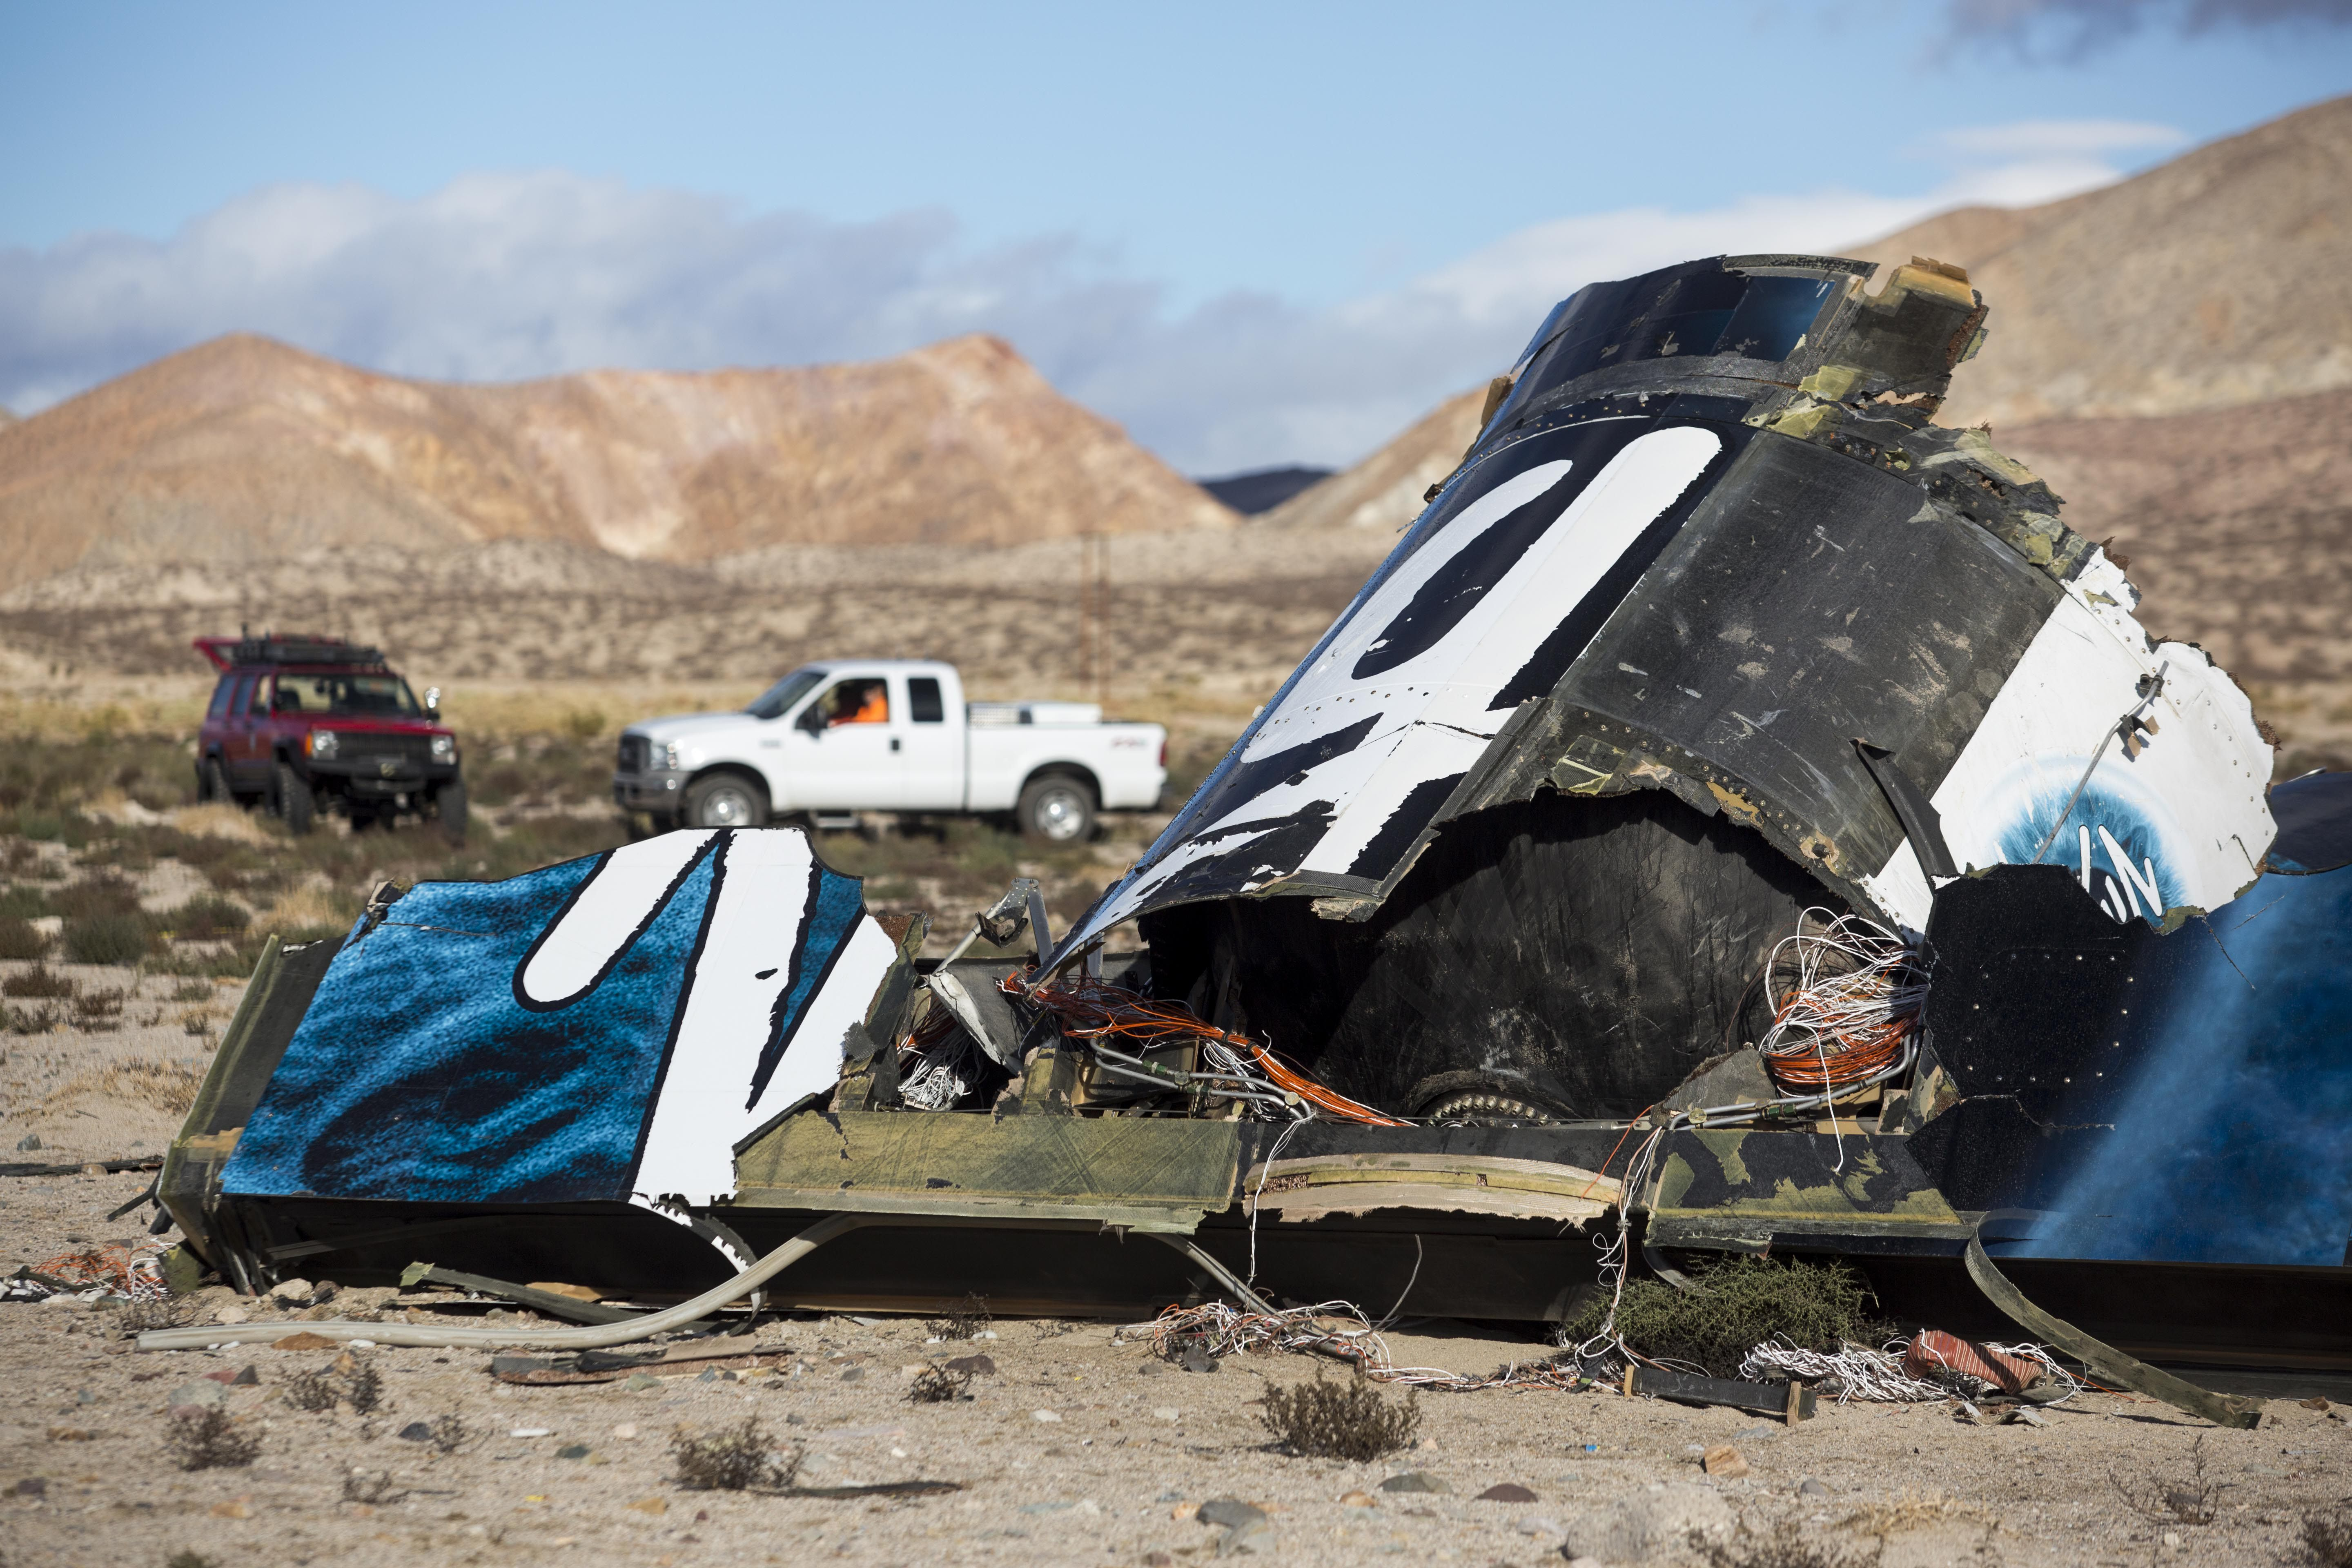 ntsb releases report on deadly virgin galactic spaceship crash over california breitbart